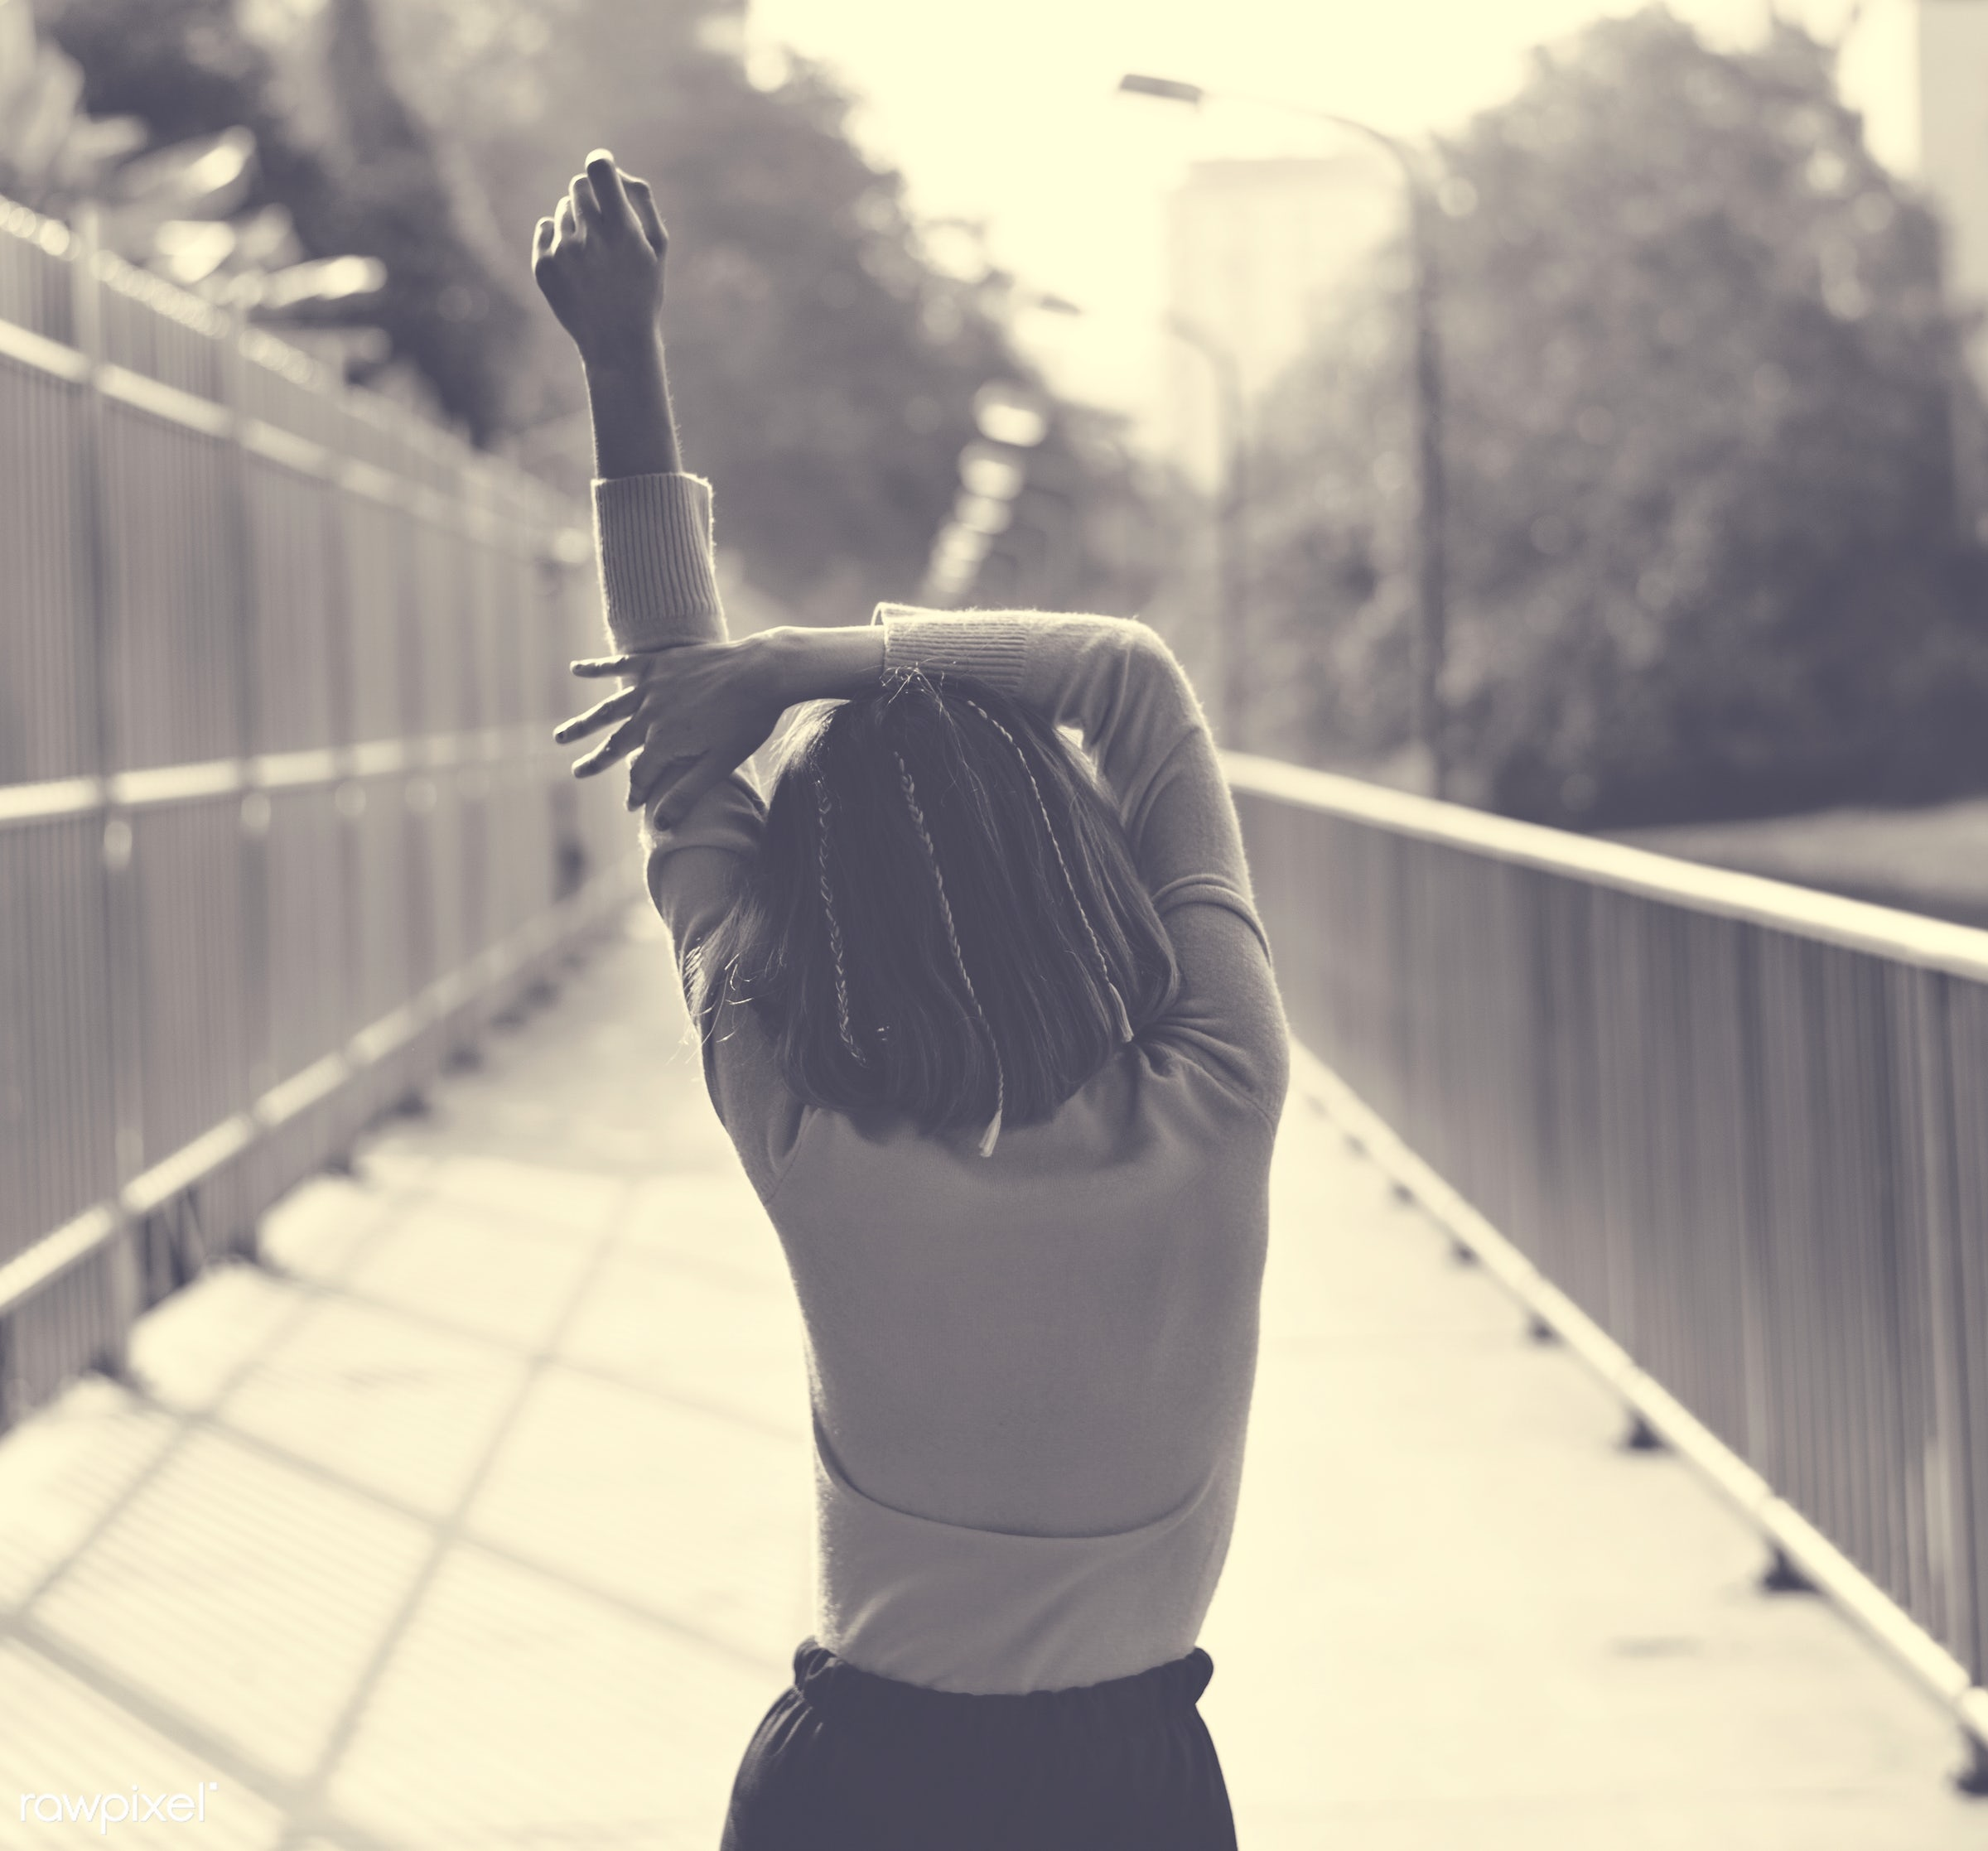 girl, woman, skinny, stretching, standing, street, city, alone, arm raised, pose, body, gesture, person